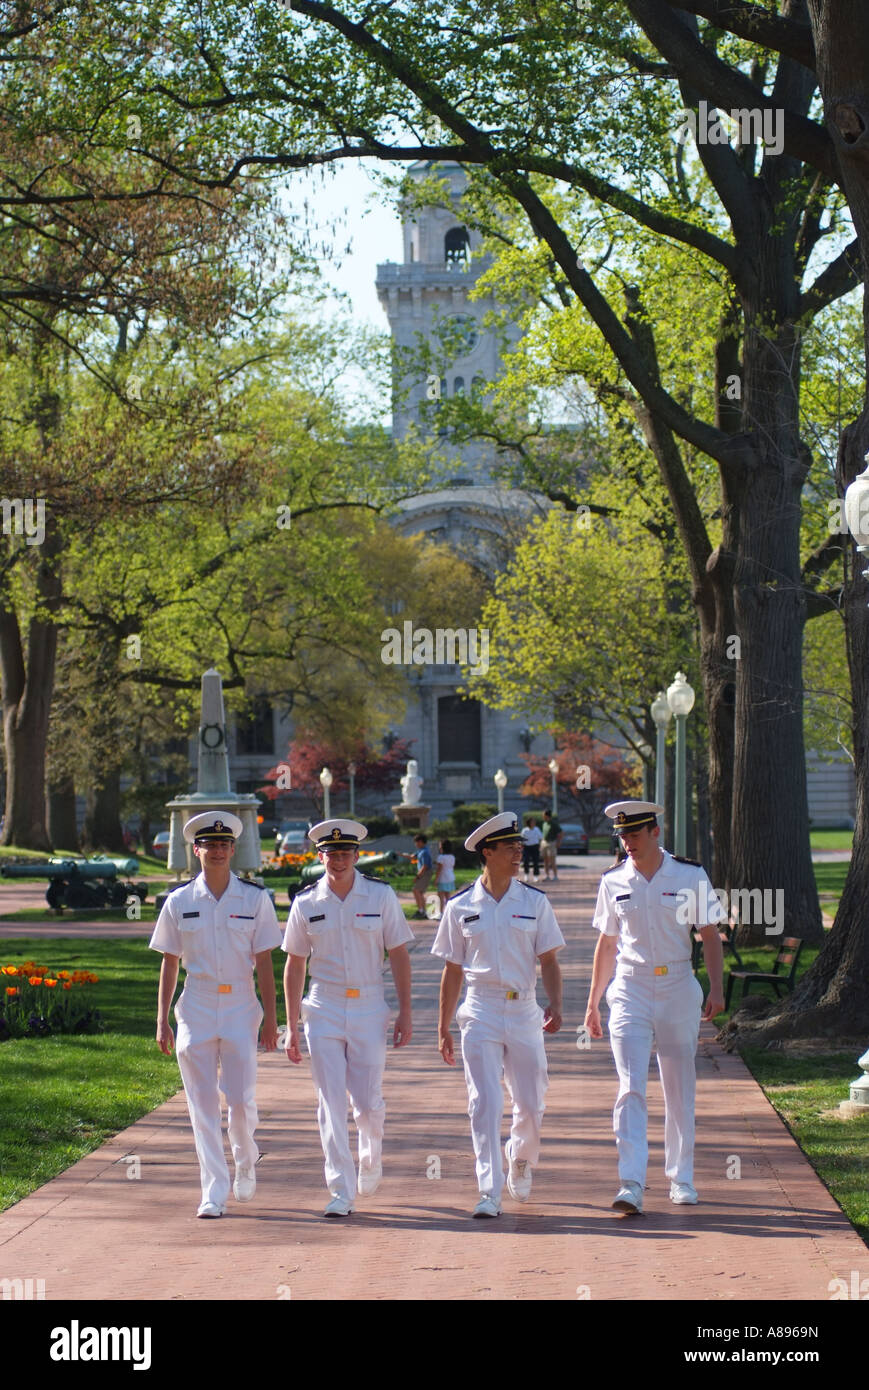 midshipmen-wall-on-the-campus-yard-of-the-u-s-naval-academy-A8969N.jpg